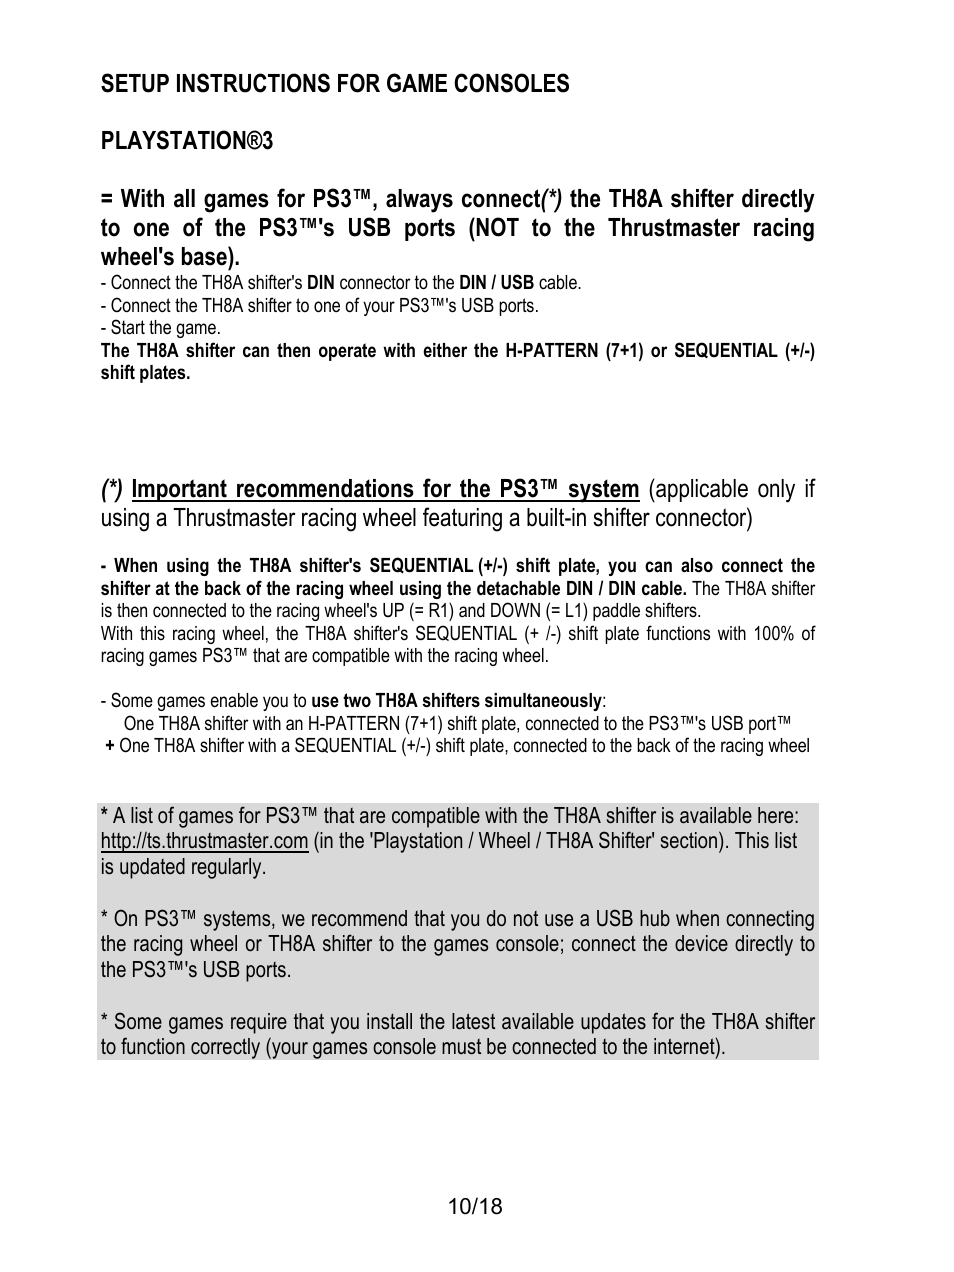 Setup instructions for game consoles, Playstation®3, Start